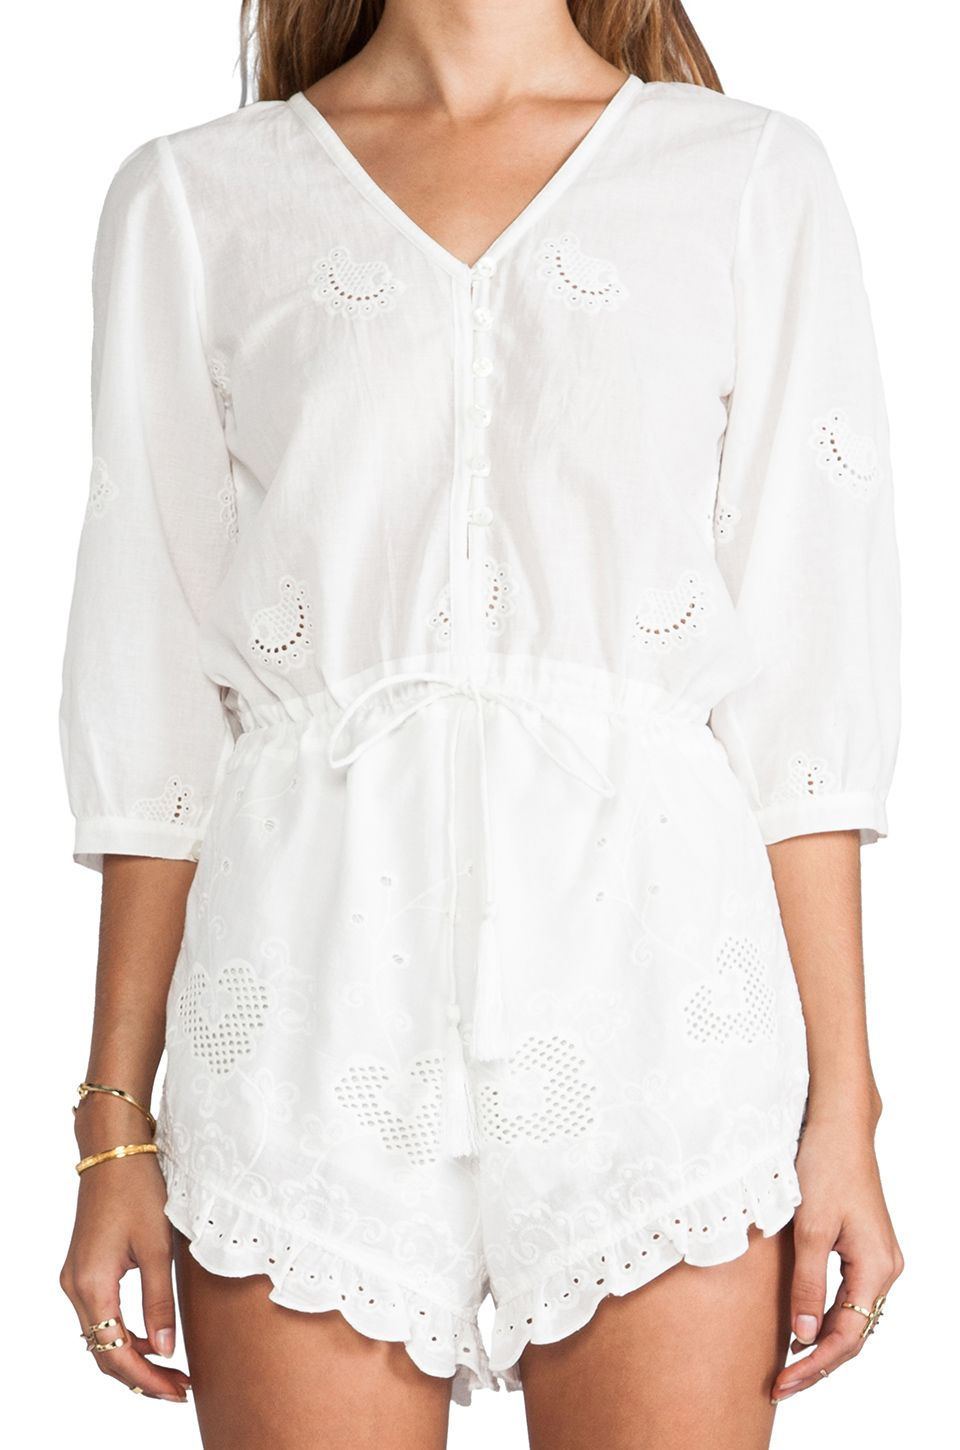 73a43849c7e Spell   The Gypsy Collective Indian Summer Playsuit in White  love this  romper